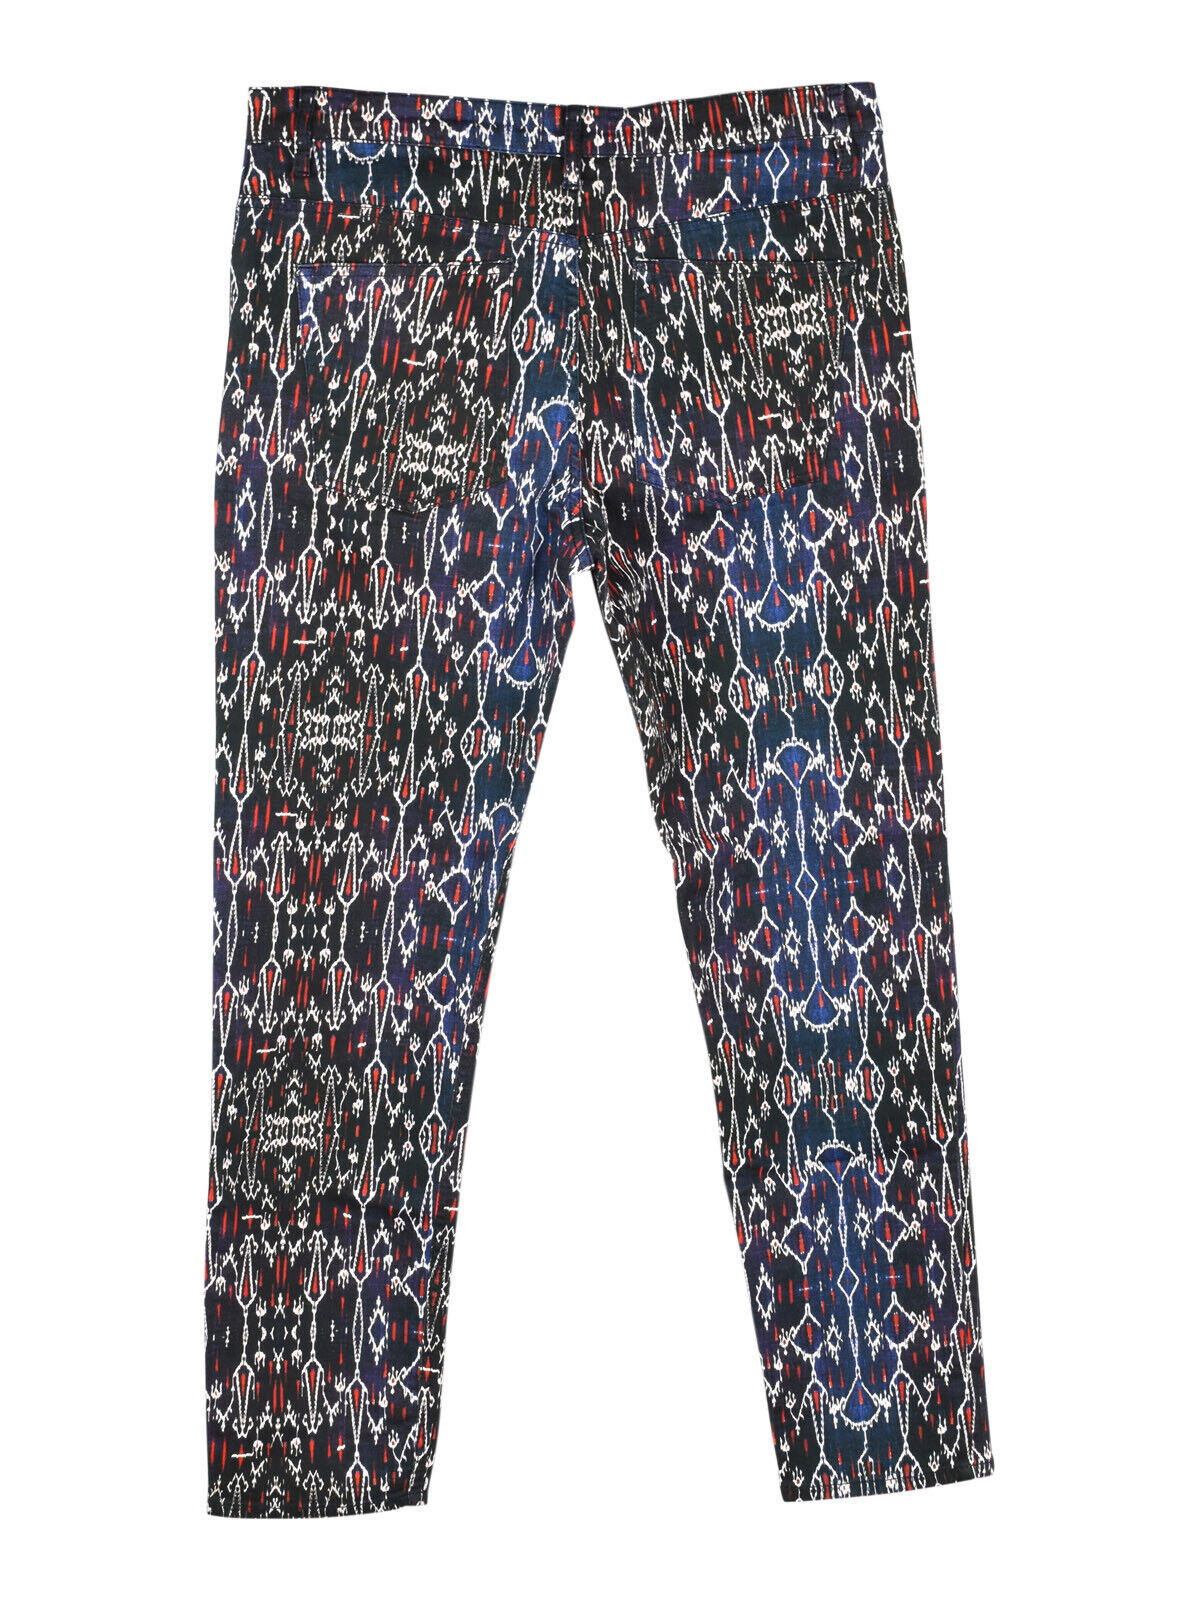 Isabel Marant Stampa Grafica Jeans Jeans Jeans Aderenti 6f345d